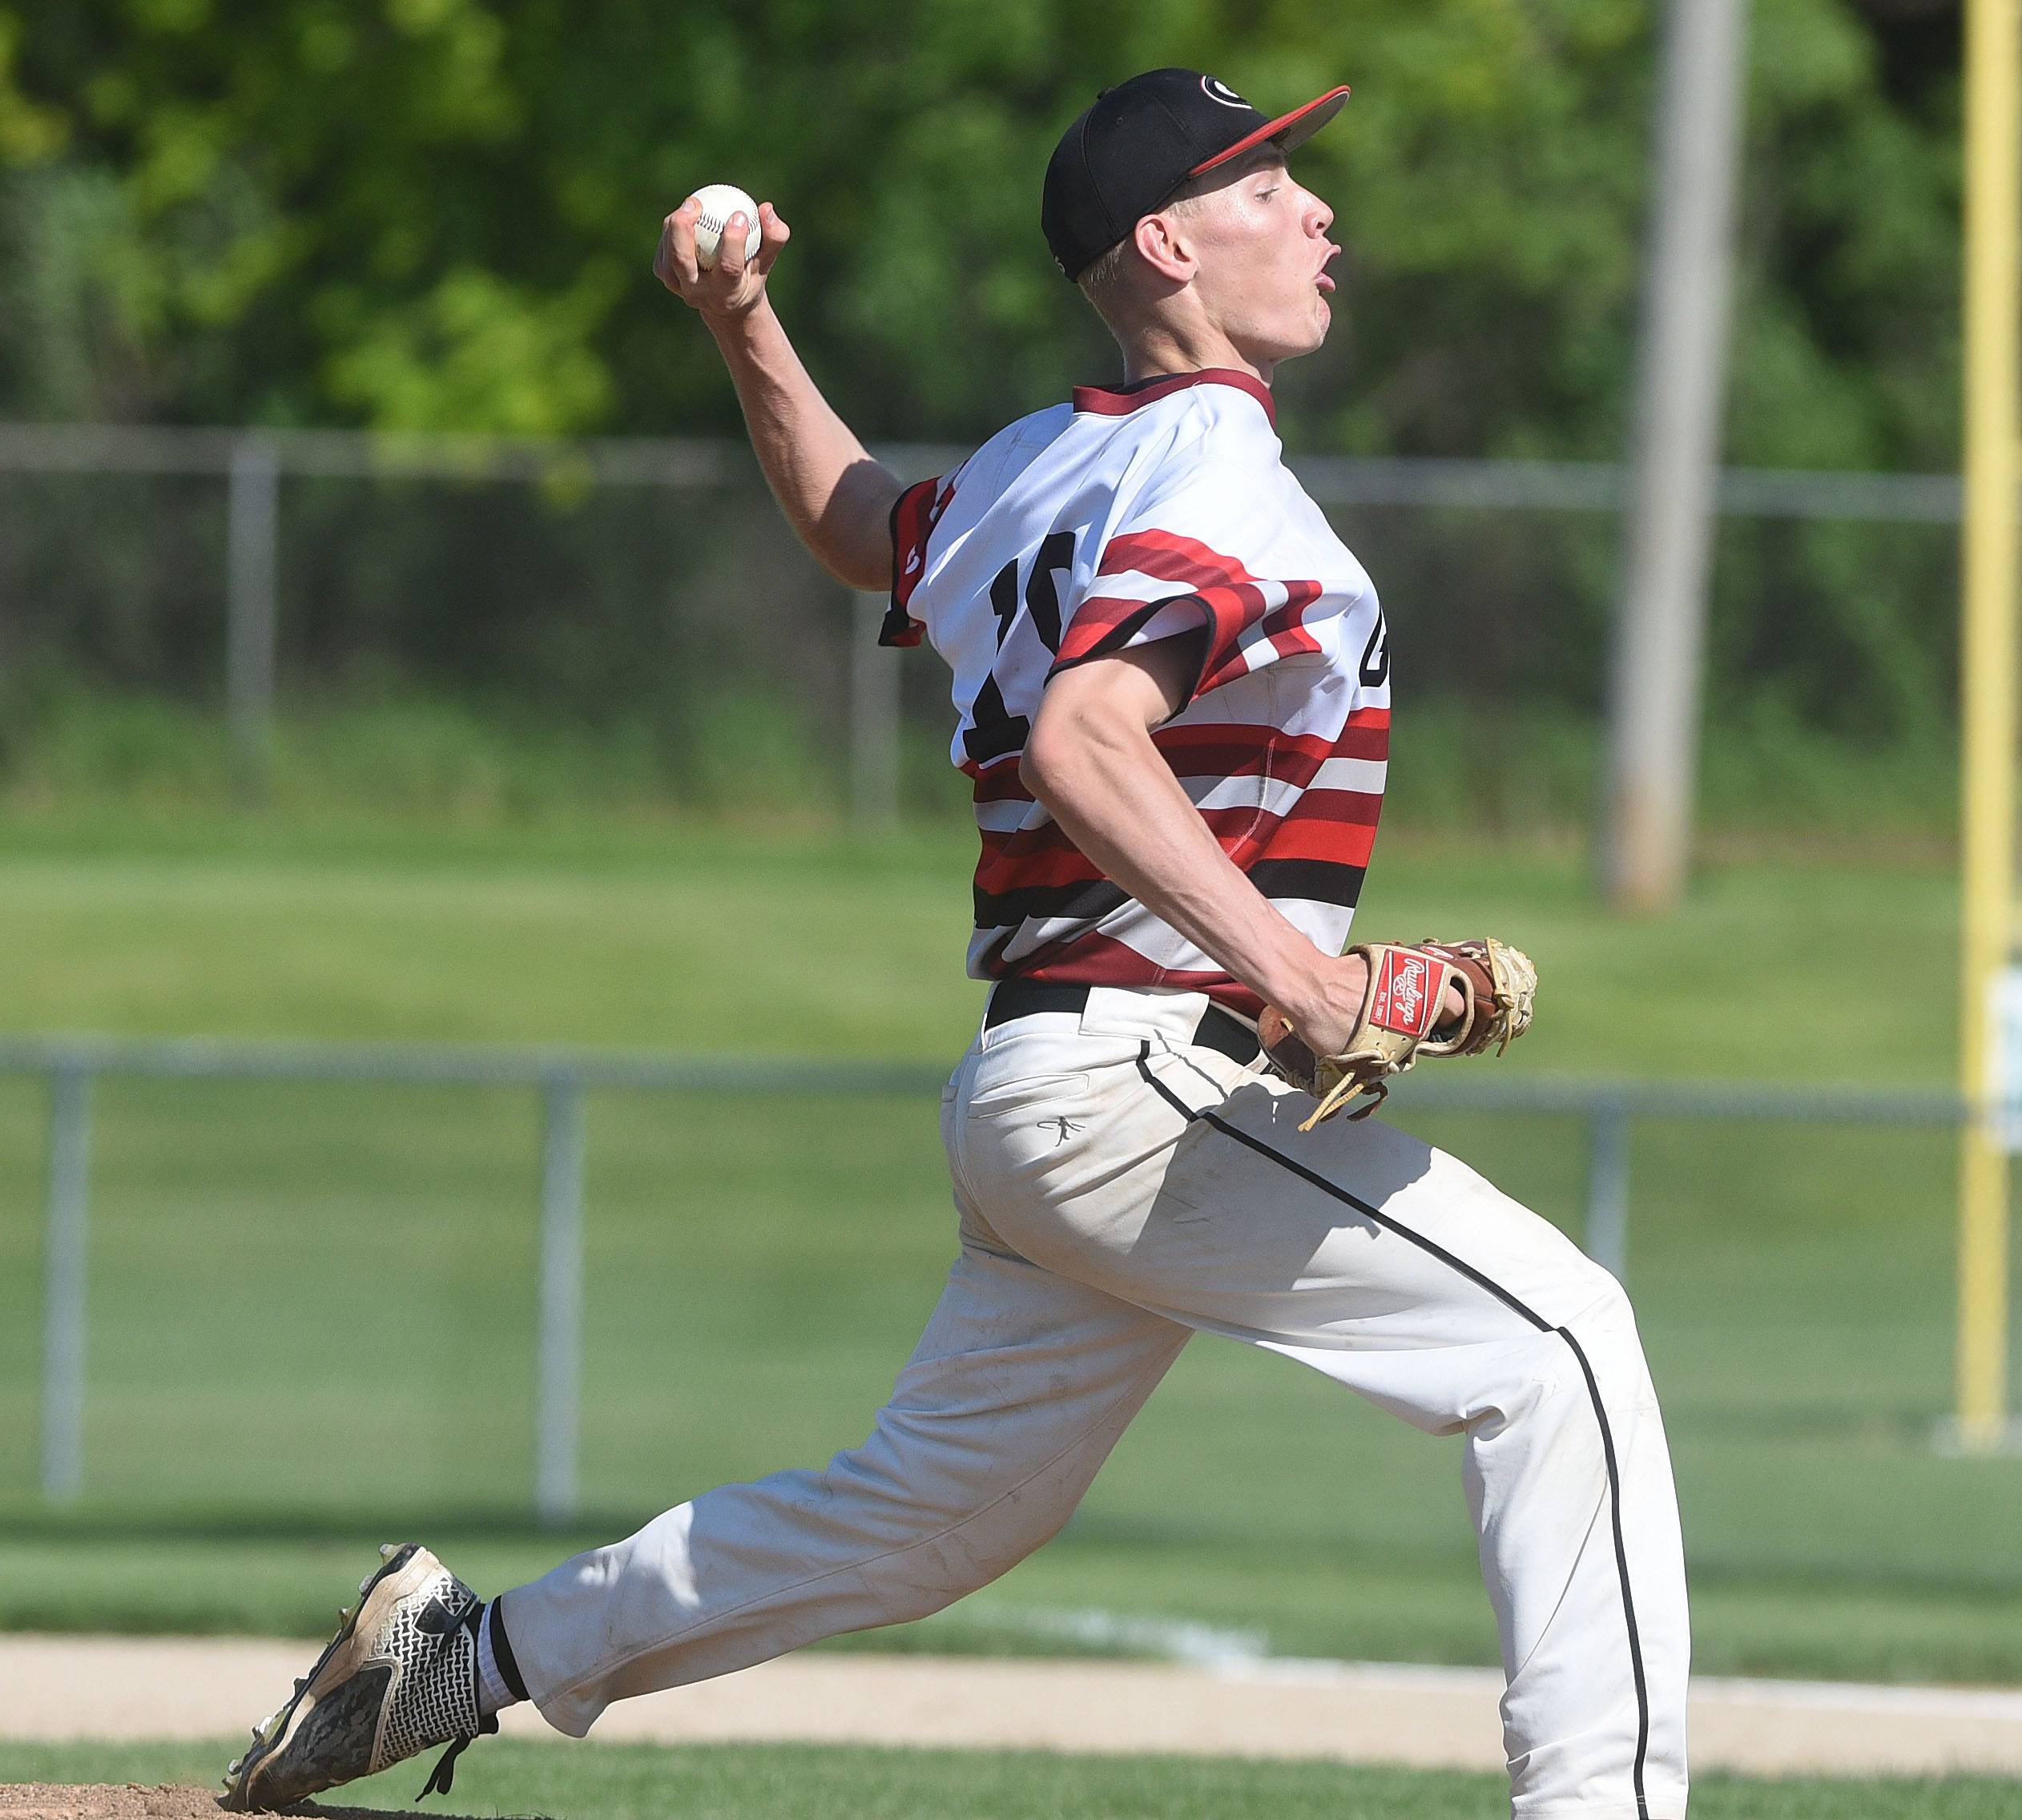 The Glenbard East pitcher Michael Sebby lets a pitch fly on the mound. This took place during the Glenbard East vs. Glenbard West Class 4A Glenbard West baseball regional semifinals Thursday.